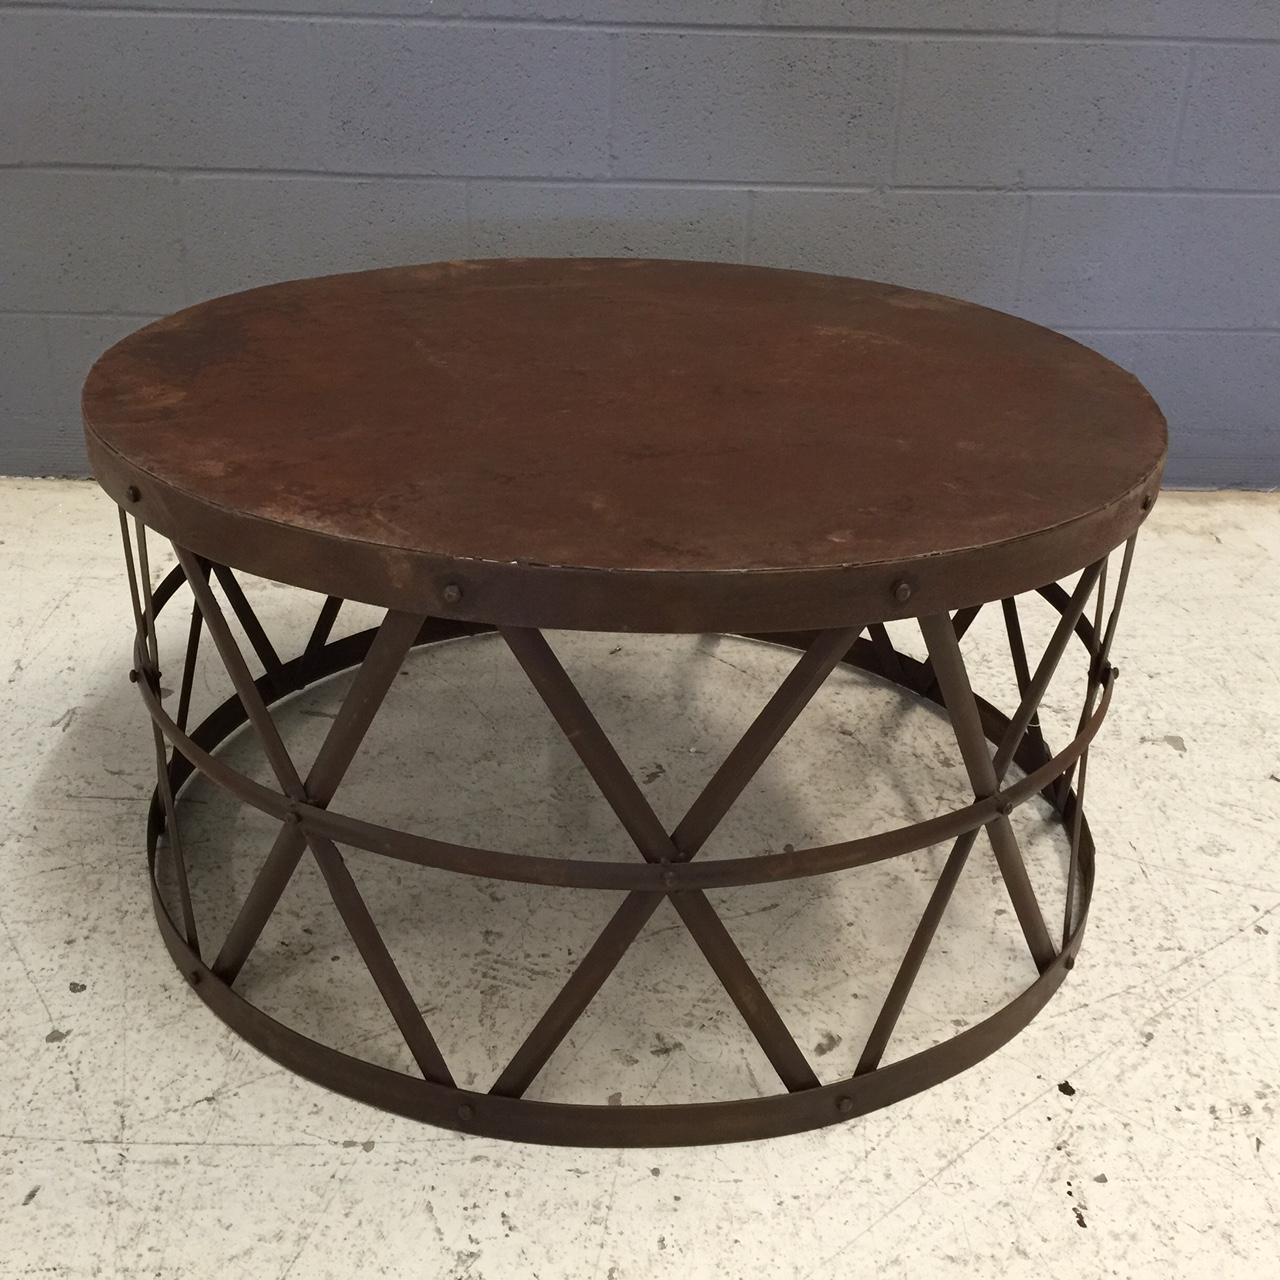 round metal coffee table nadeau nashville. Black Bedroom Furniture Sets. Home Design Ideas